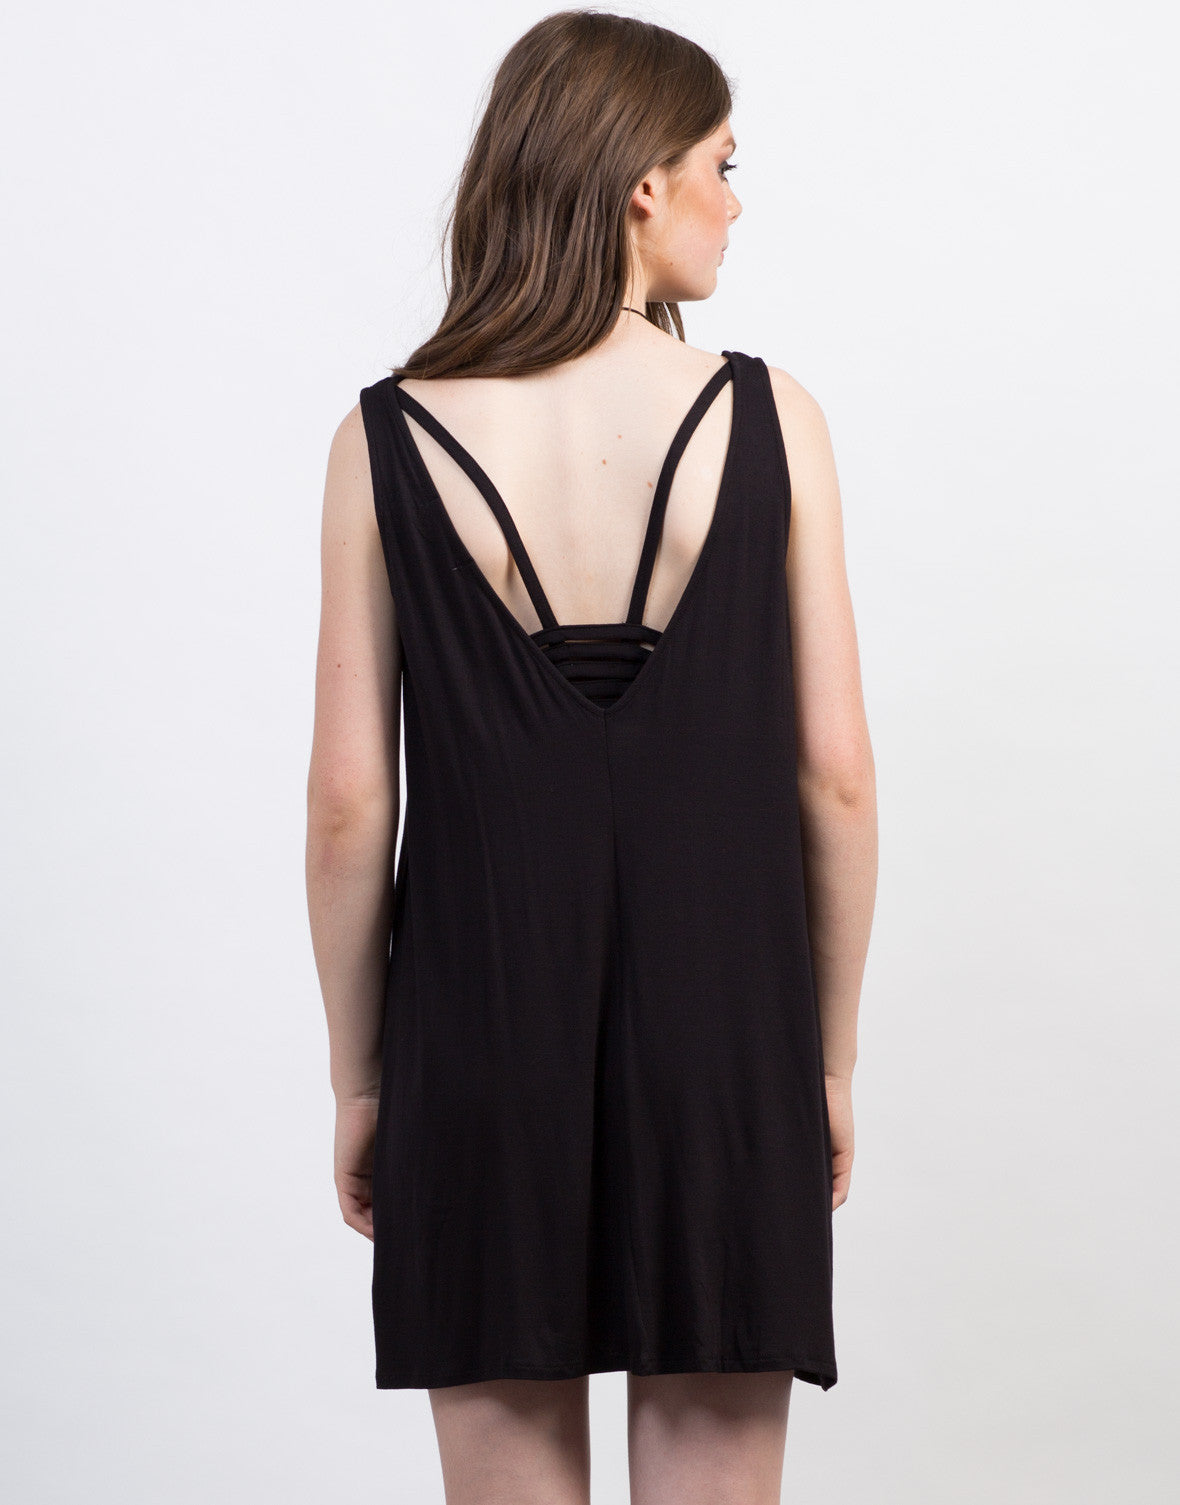 Back View of Ladder Back Tank Dress